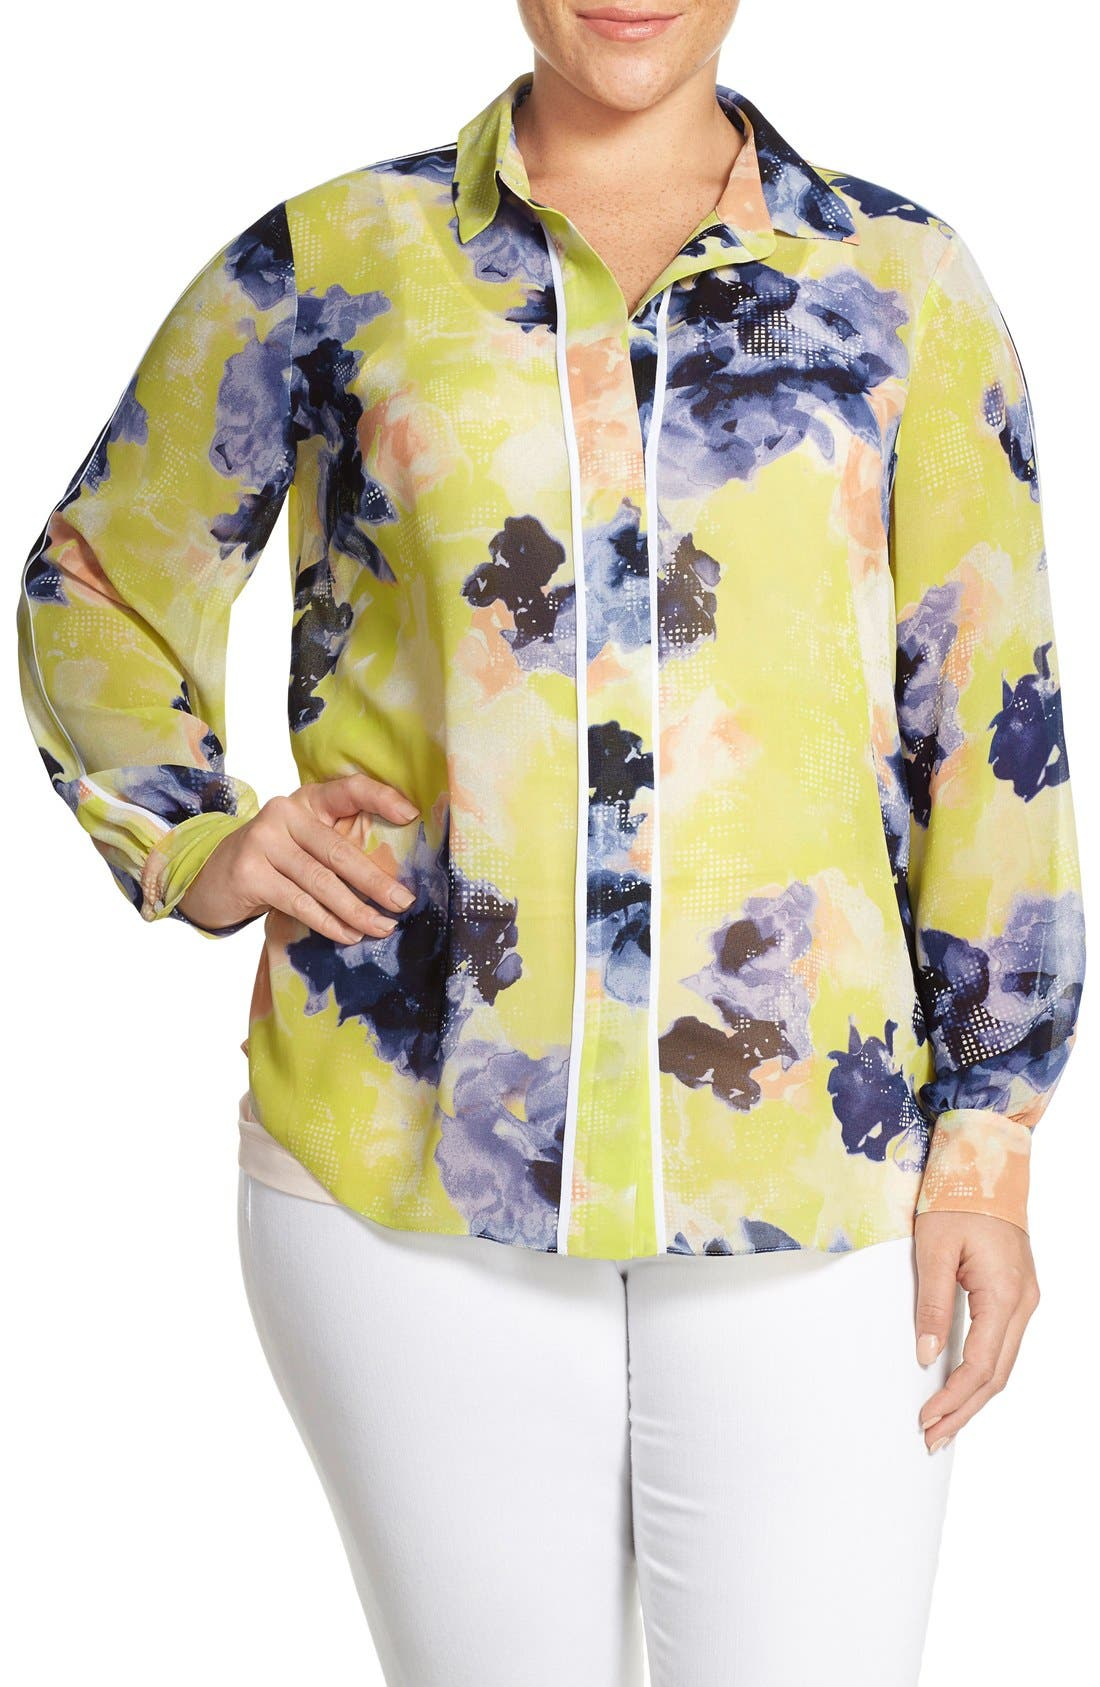 Alternate Image 1 Selected - Ellen Tracy Piped Floral Print Blouse (Plus Size)